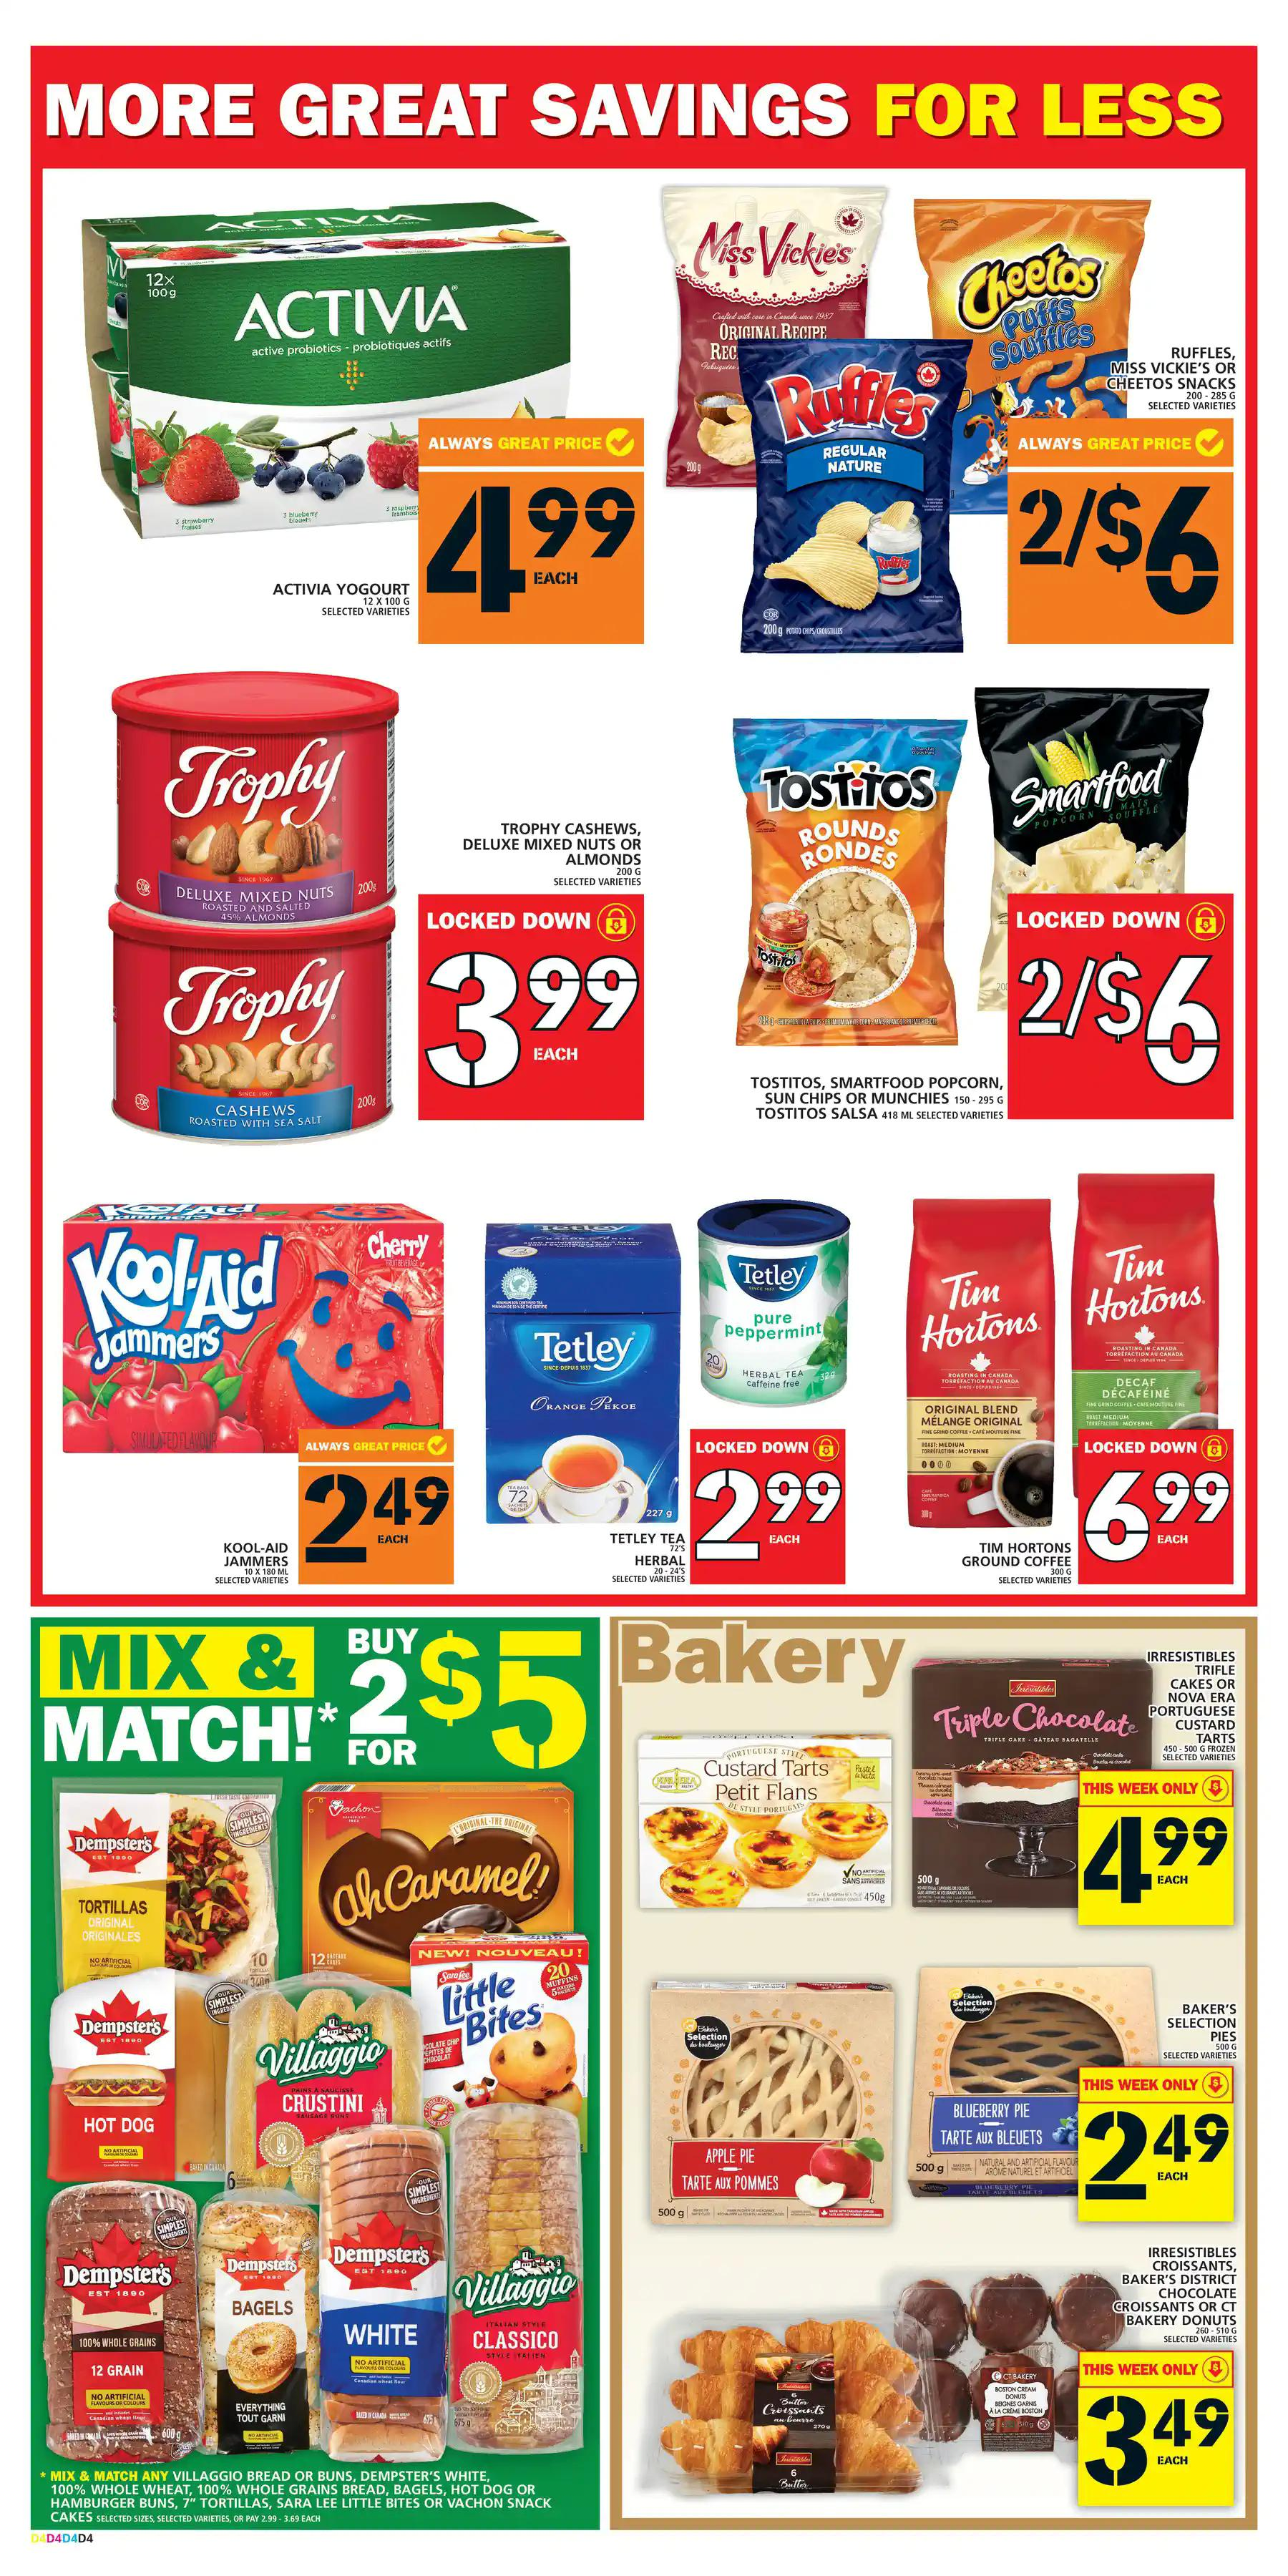 Food Basics - Weekly Flyer Specials - Page 8